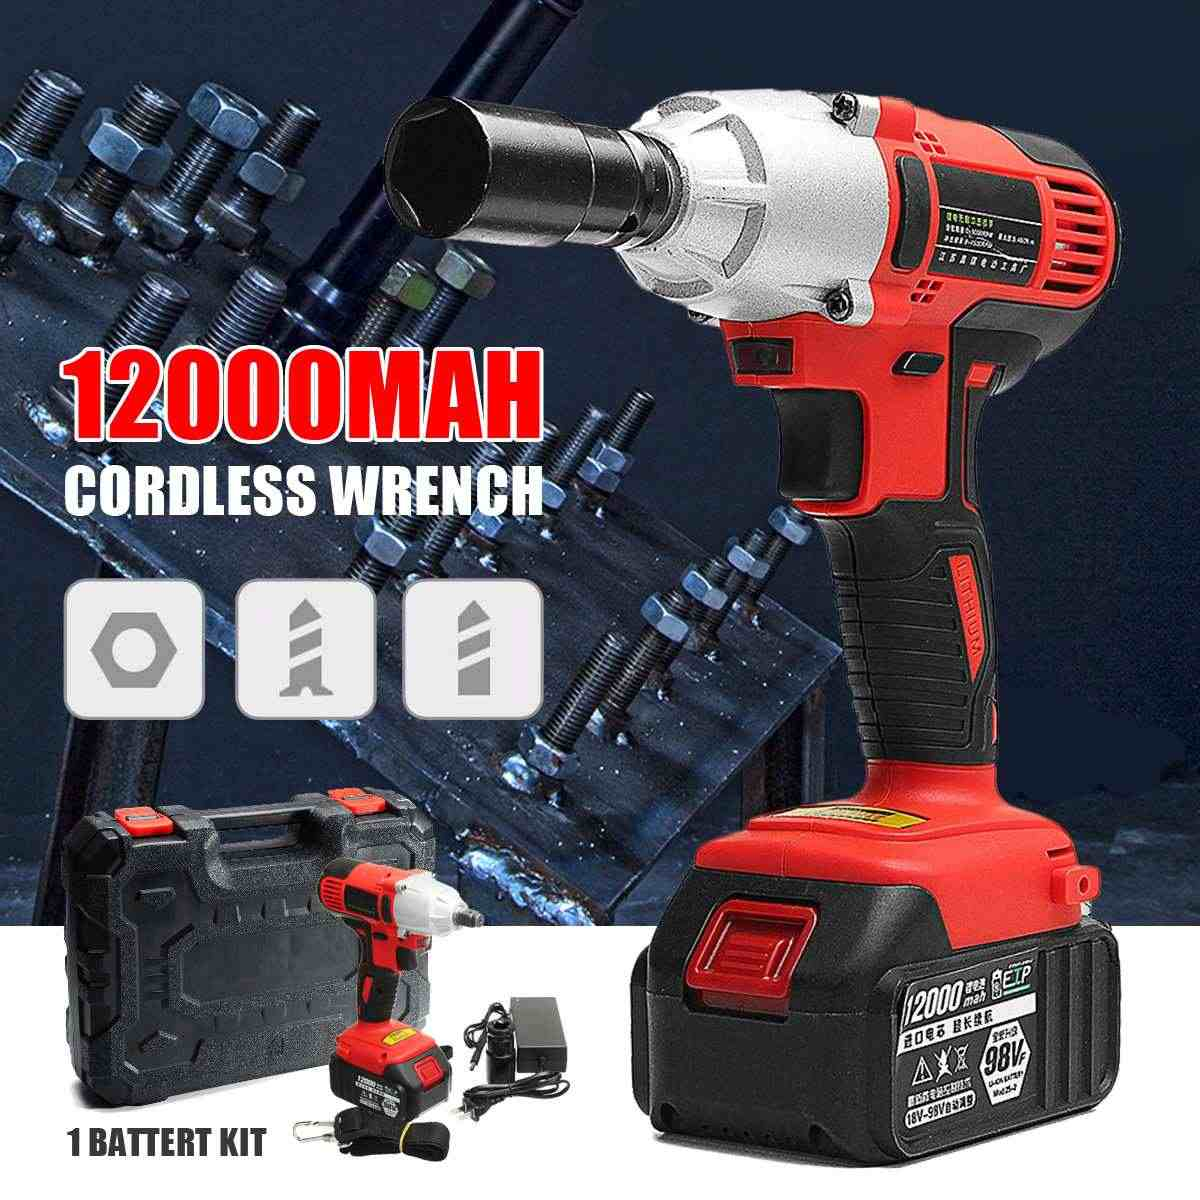 Electric Wrench 98V Lithium-Ion Cordless Impact Wrench Brushless Motor Power Wrench Tools with box